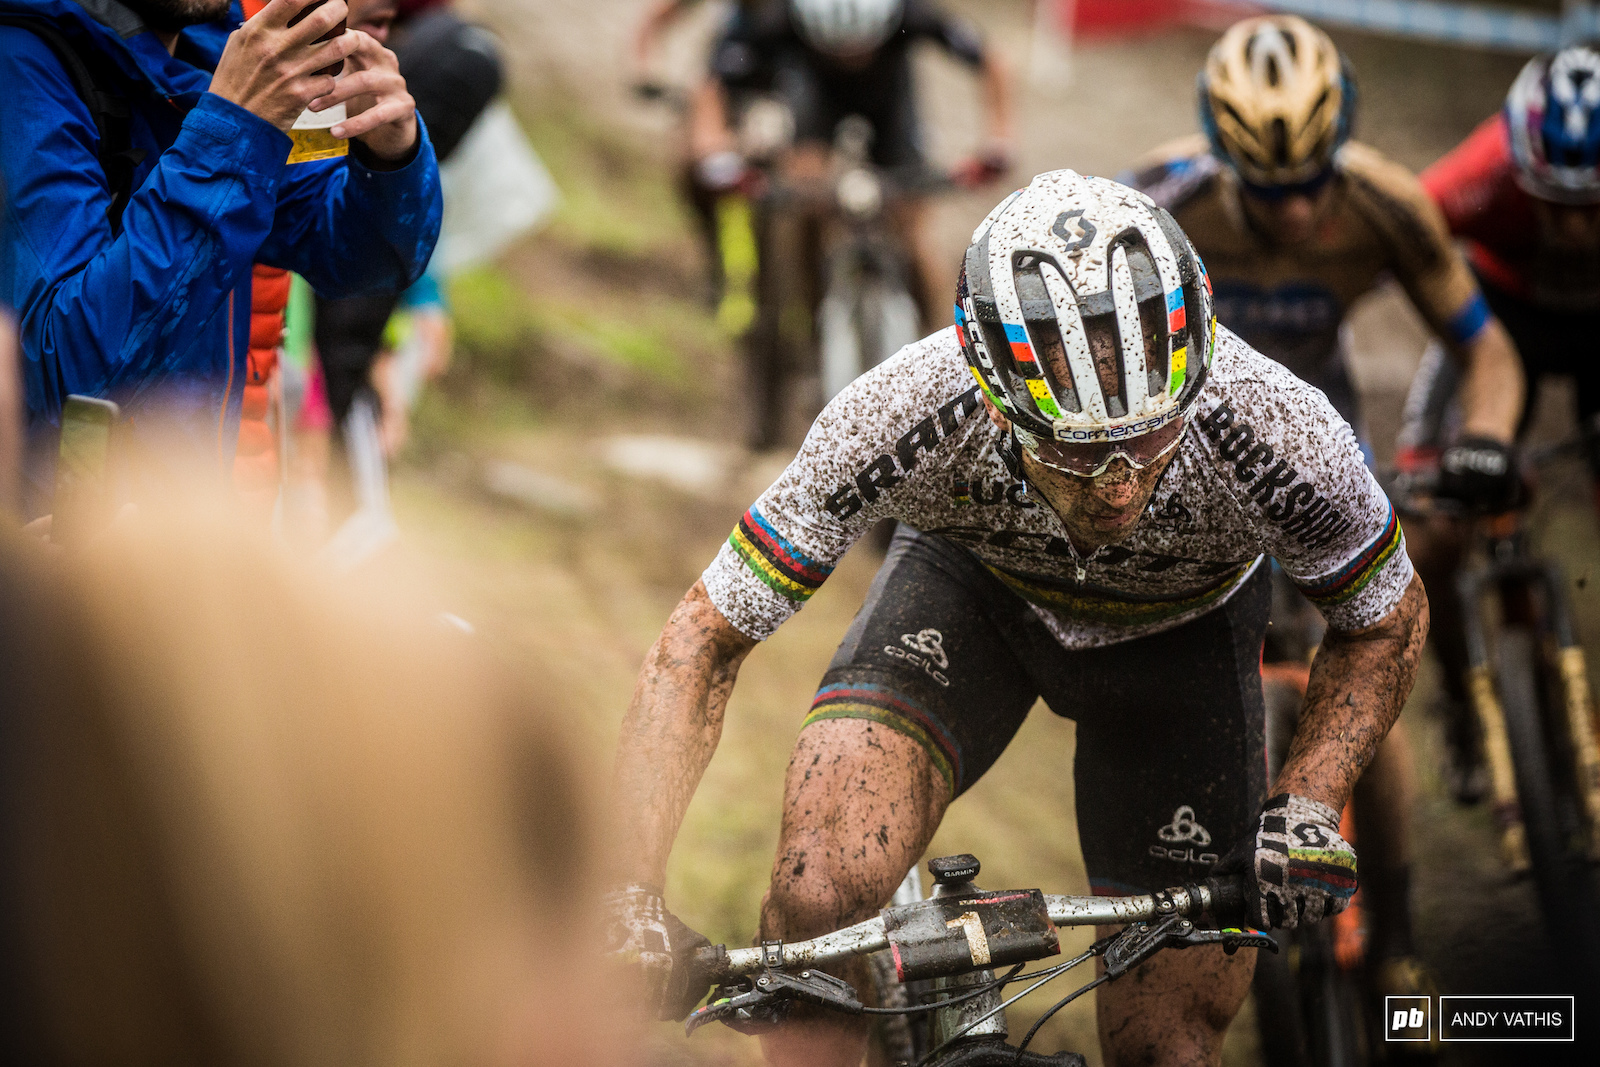 Nino Schurter couldn t find his pace on the slick track.